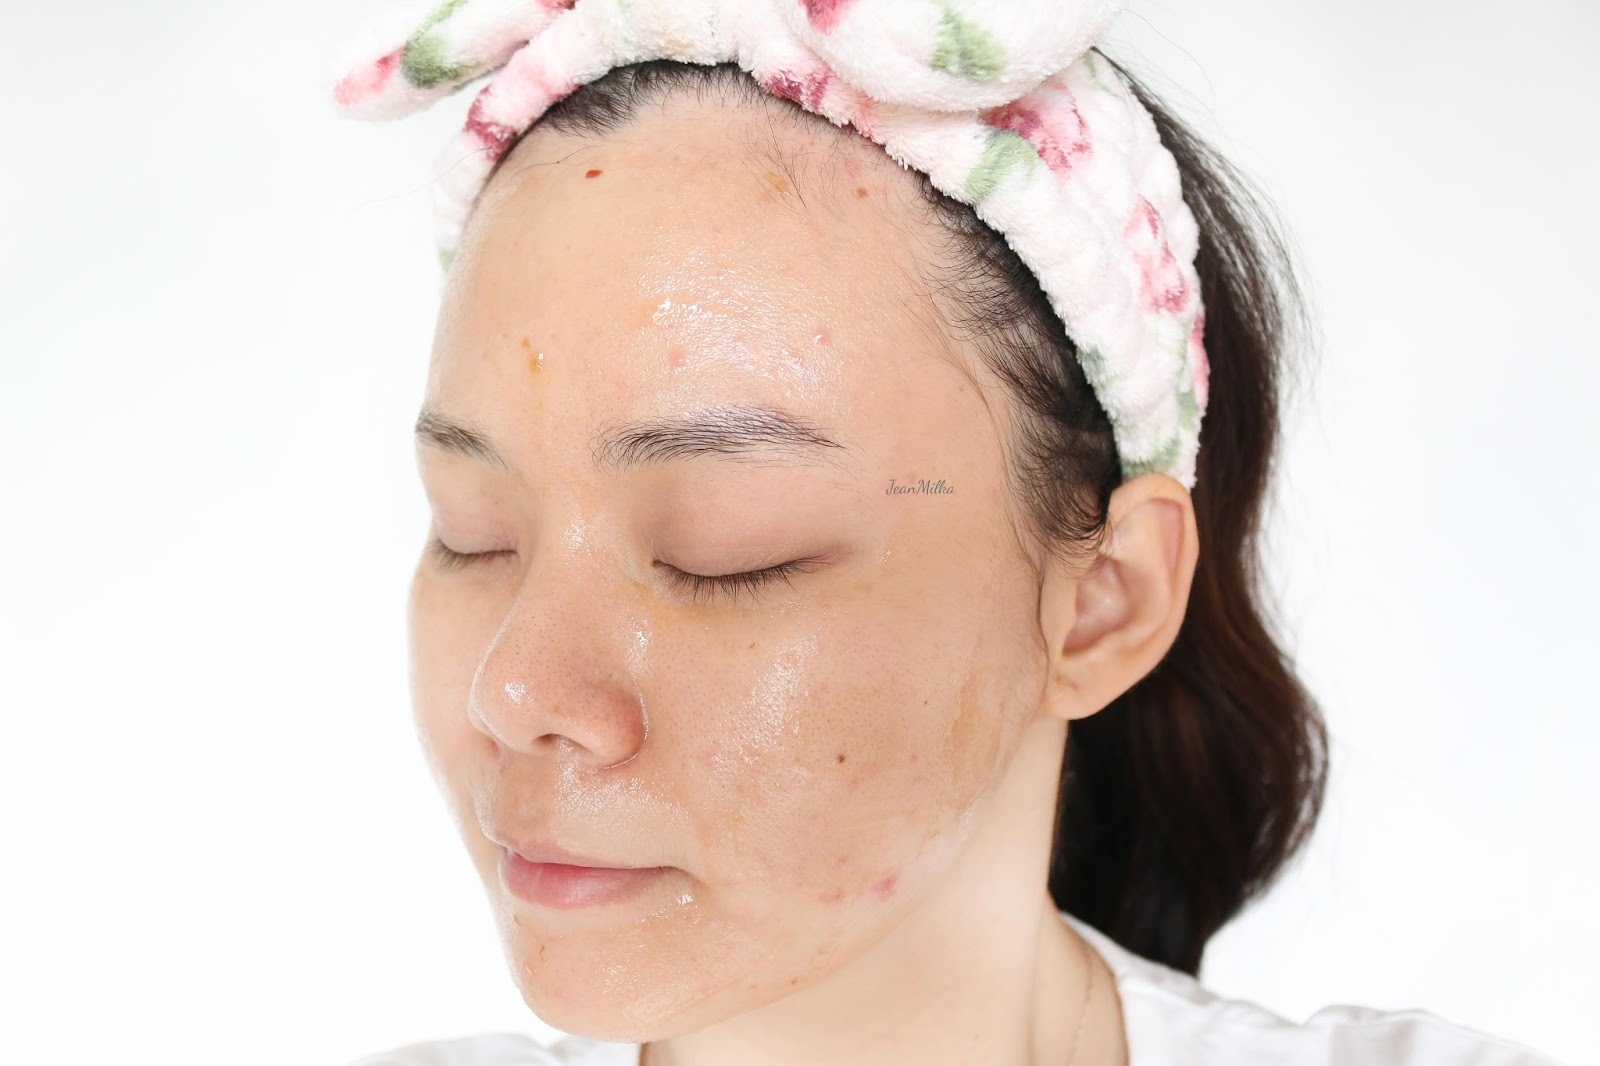 the body shop, body shop, superfood mask, the body shop mask, the body shop superfood mask, the body shop skincare, skincare, mask, masker, masker superfood, masker wajah, face mask, new face mask, review, product review, british rose mask, british rose fresh plumping mask